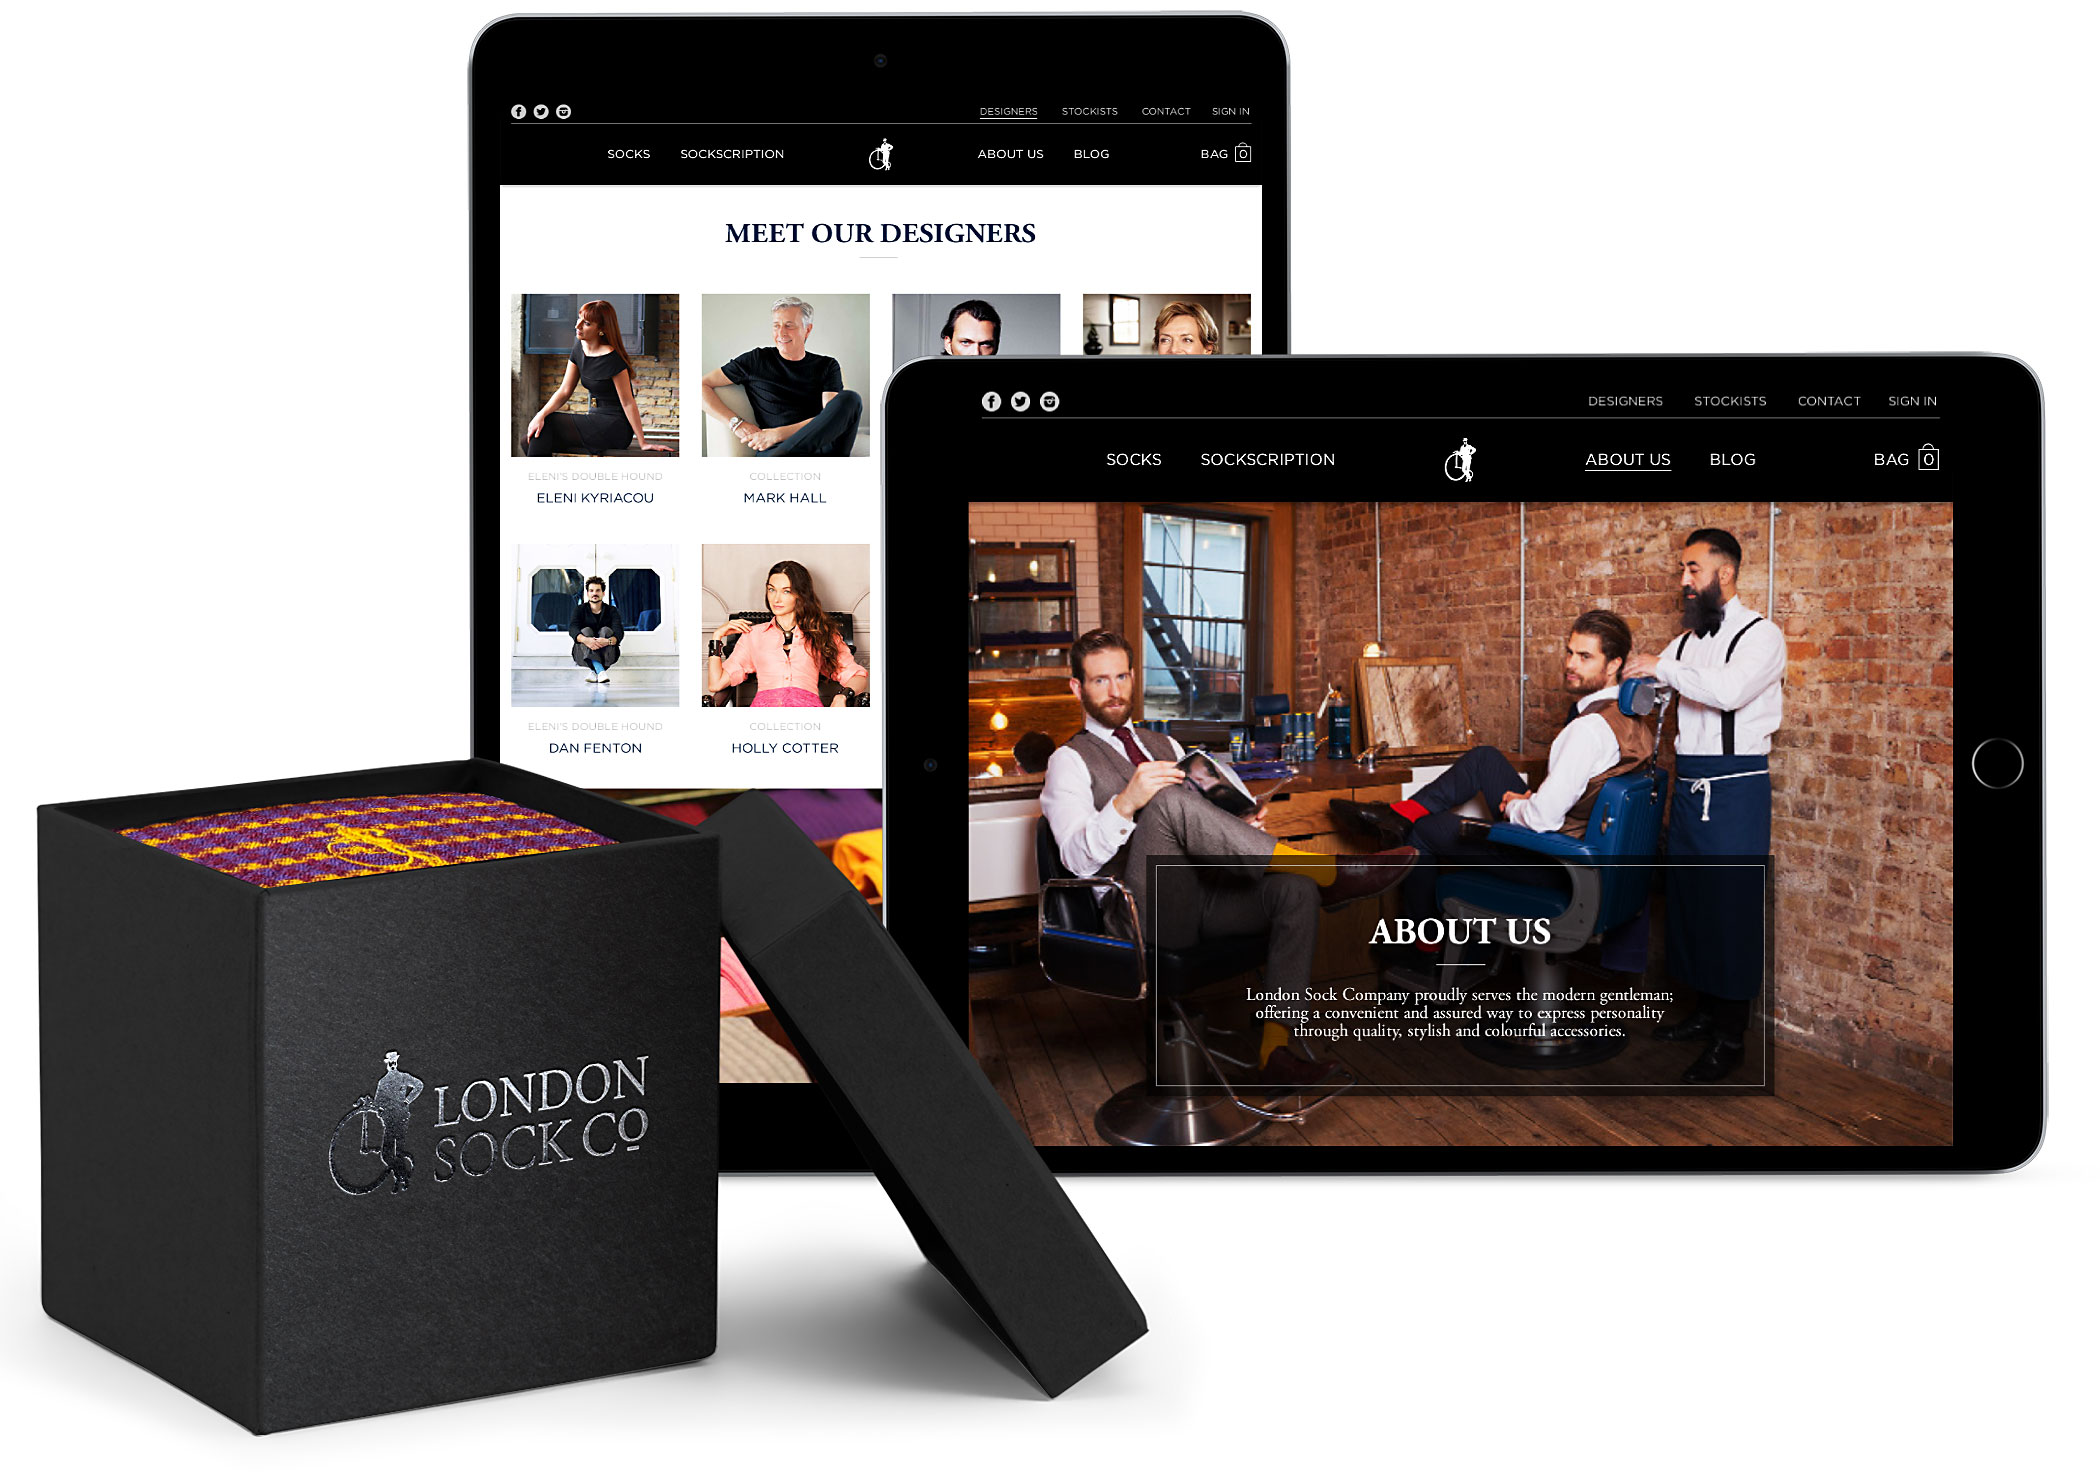 London Sock company branded sock packaging and e-commerce website